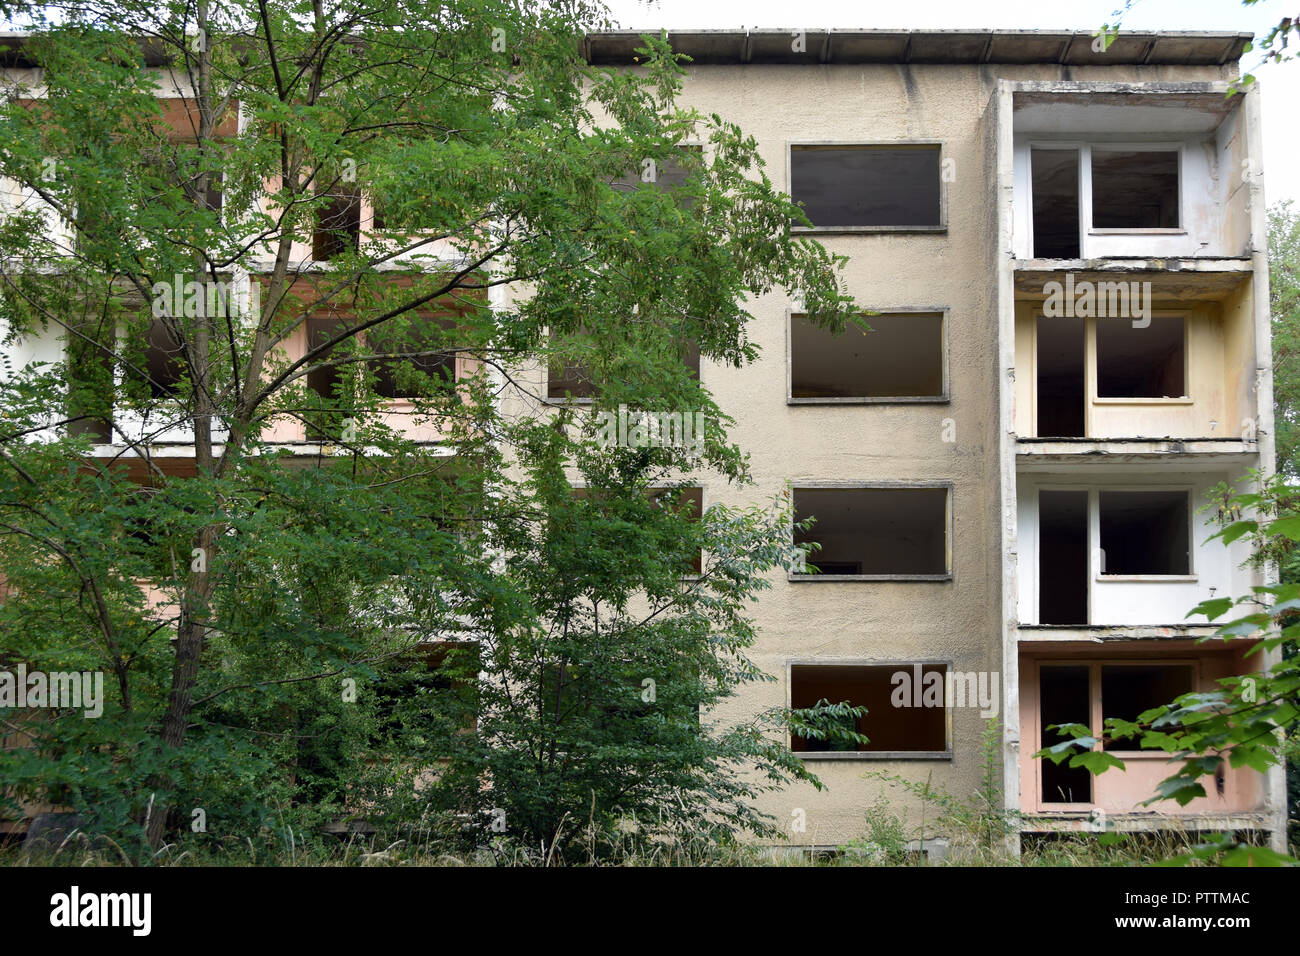 Relics of the soviet air base in Wittstock, former east Germany. An apartment block. - Stock Image